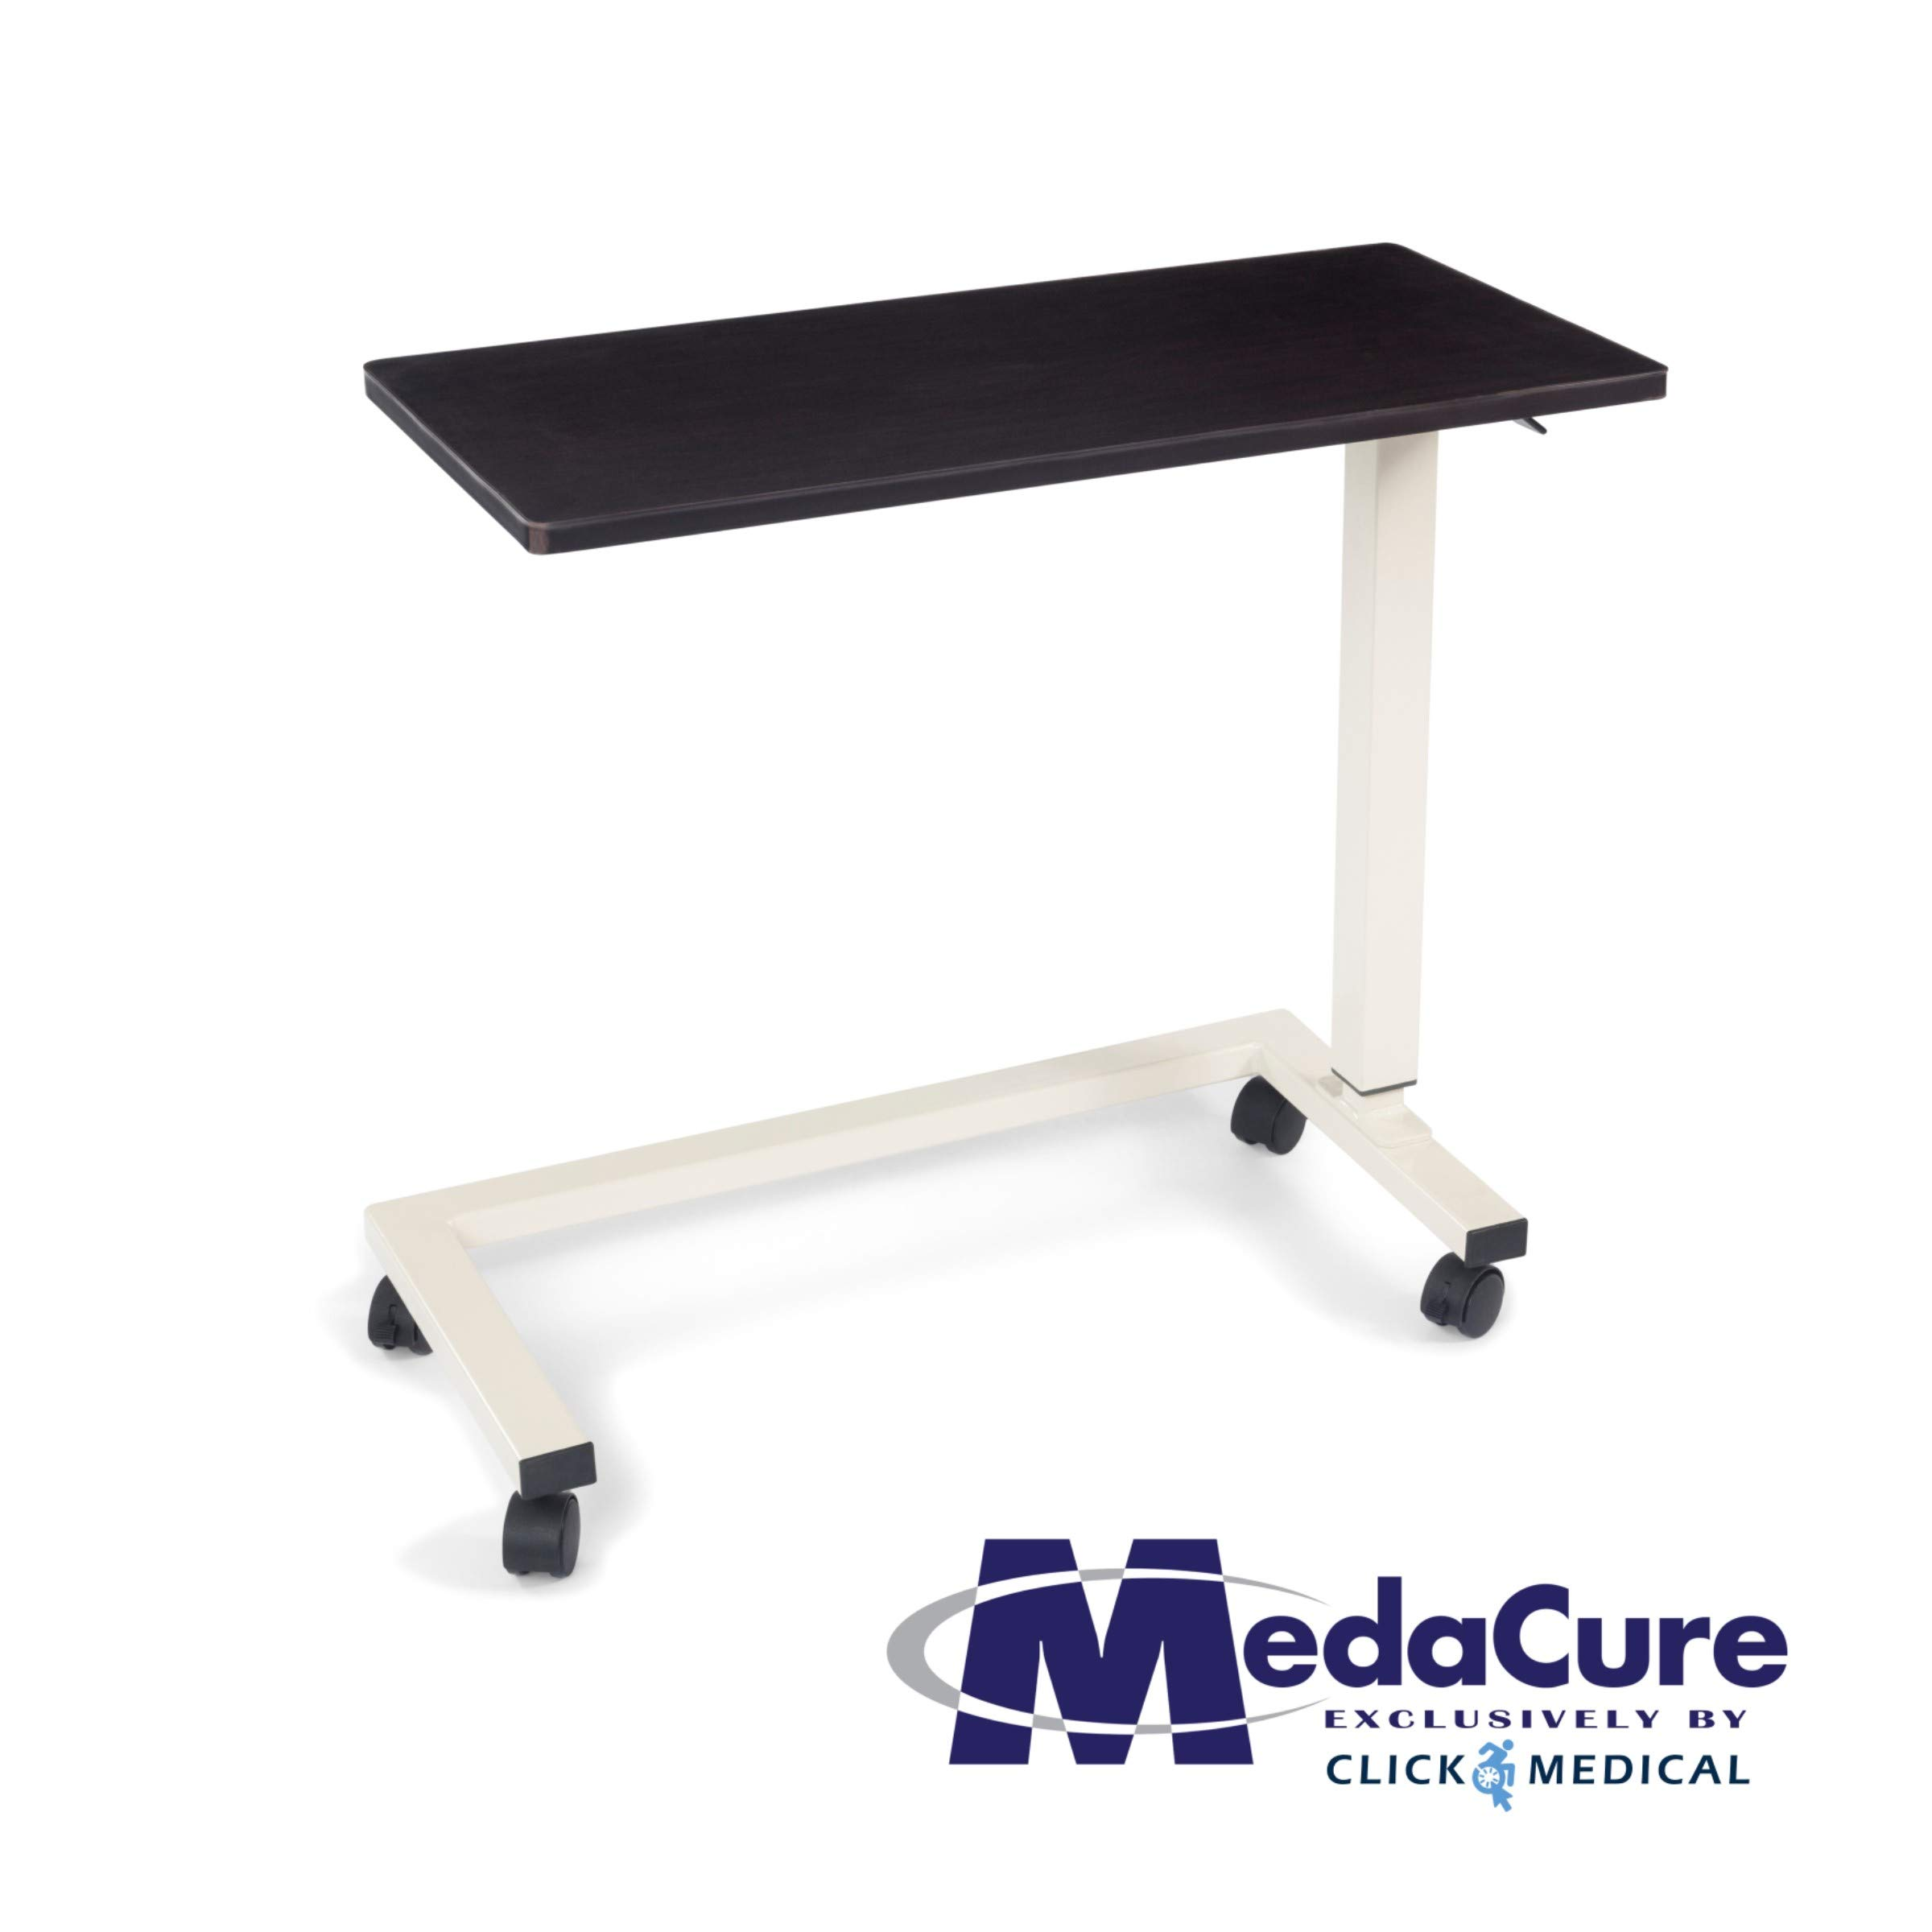 Medical Height Adjustable Overbed Table - Flame Resistant and Anti-Spill Rim - Heavy Duty Steel Frame and Swivel Locking Casters for Home, Hospital,Laptop,Reading – 50lb Weight Capacity. (Mahogany)